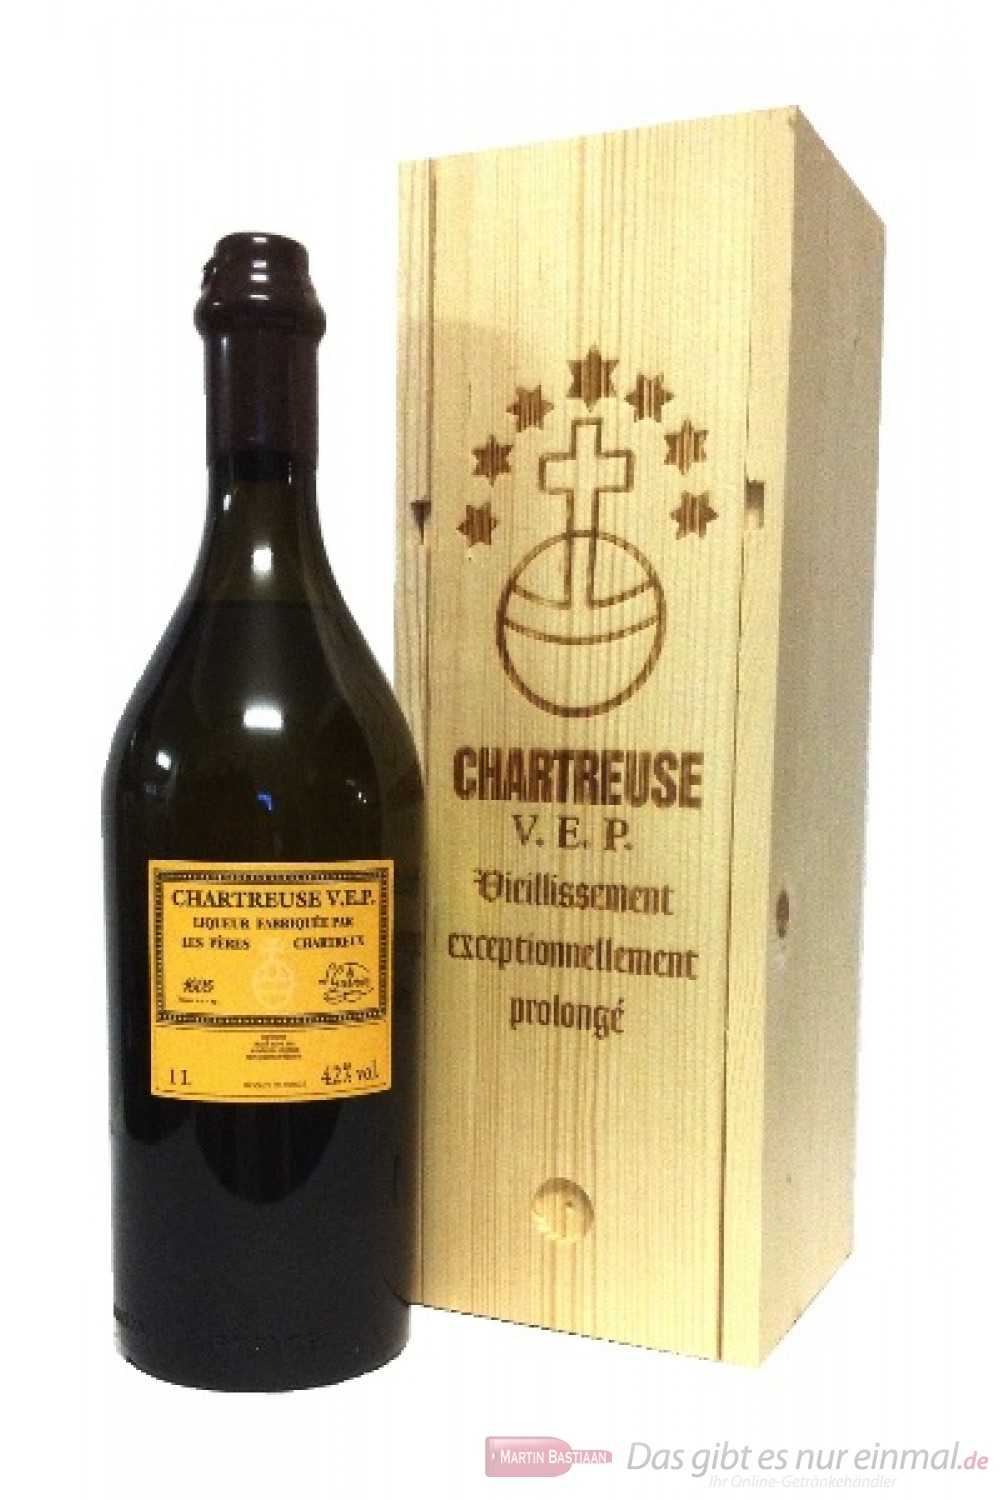 Chartreuse gelb VEP